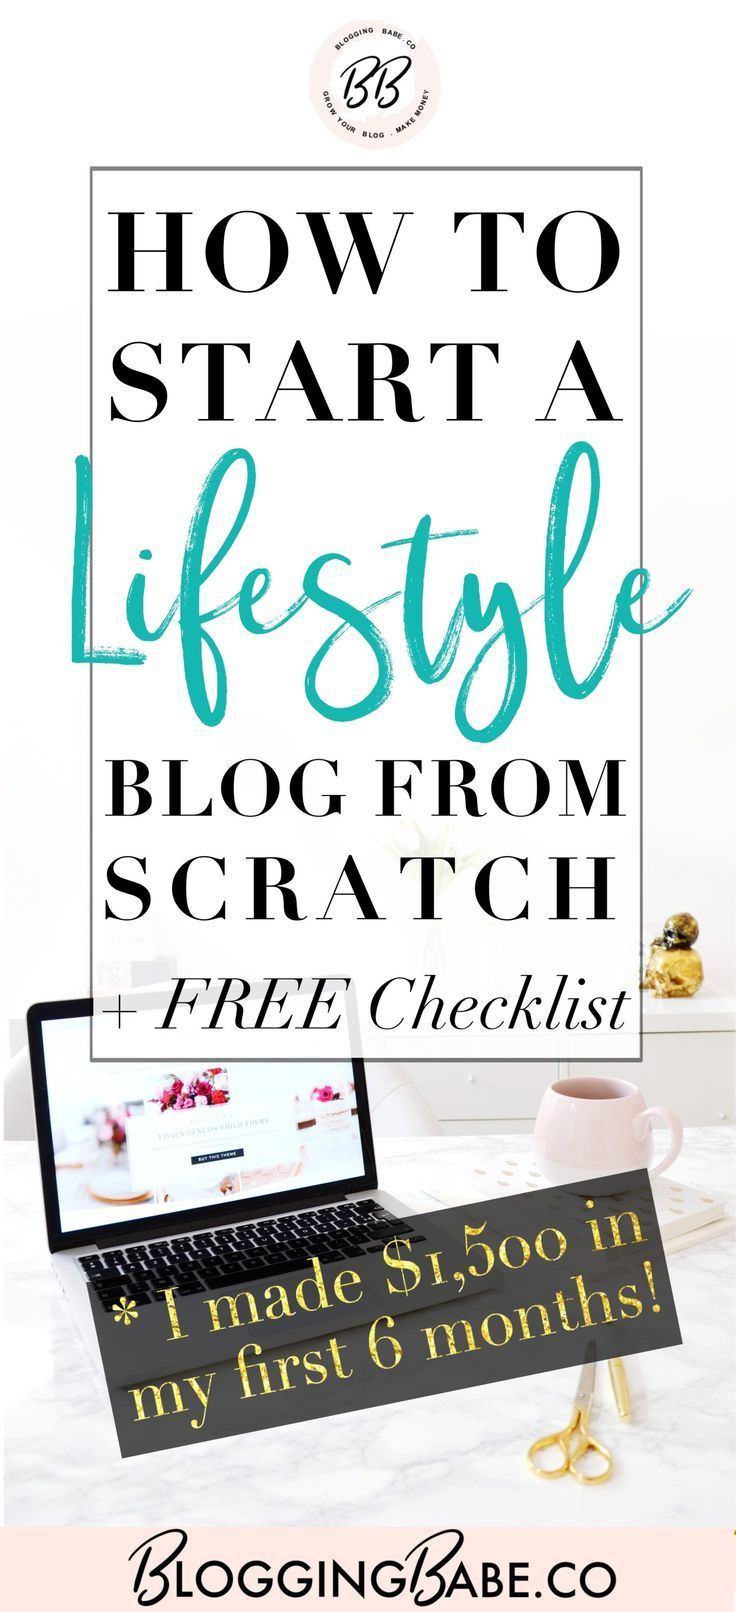 This Complete Guide On How To Start A Lifestyle Blog From Scratch